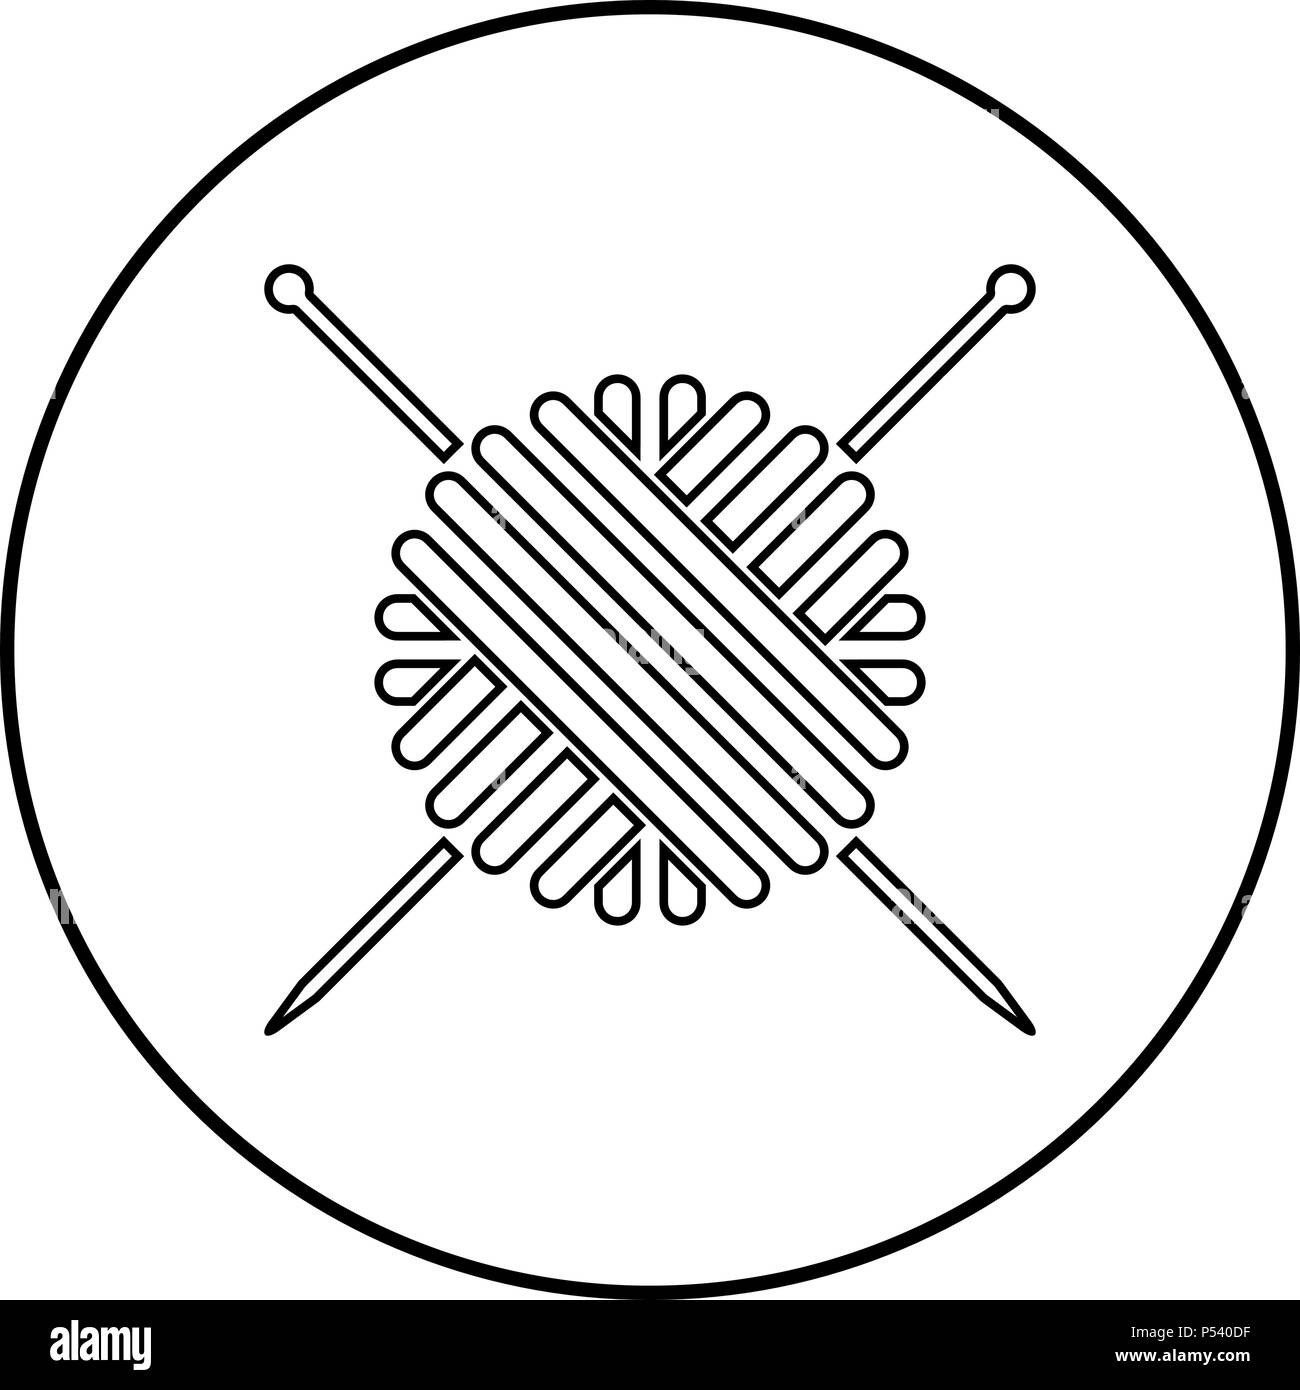 Ball of wool yarn and knitting needles icon black color in circle round outline - Stock Vector